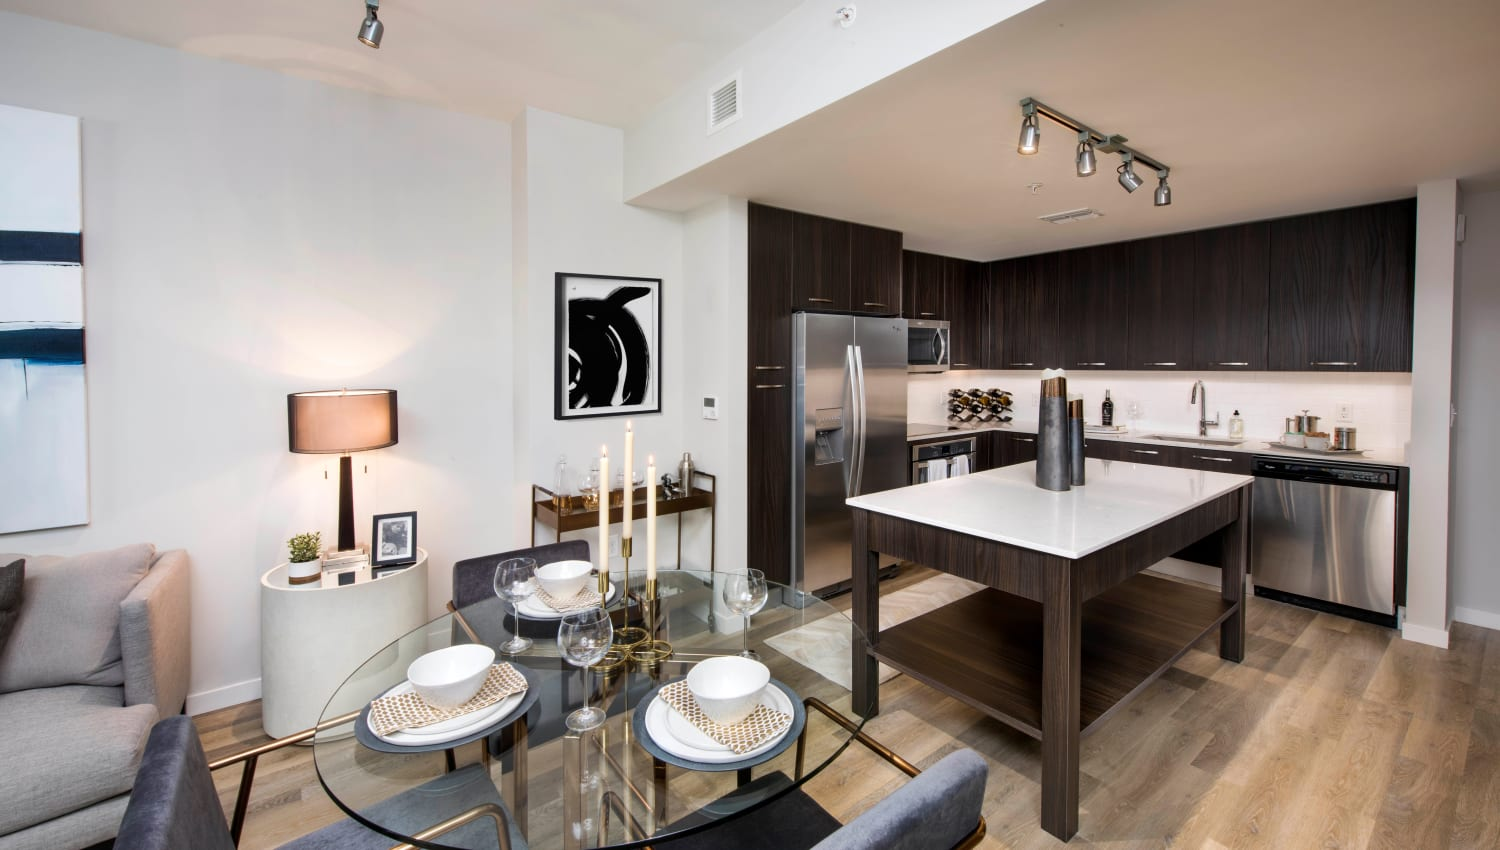 Dining and kitchen areas in the open-concept floor plan of a model home at Olympus Harbour Island in Tampa, Florida